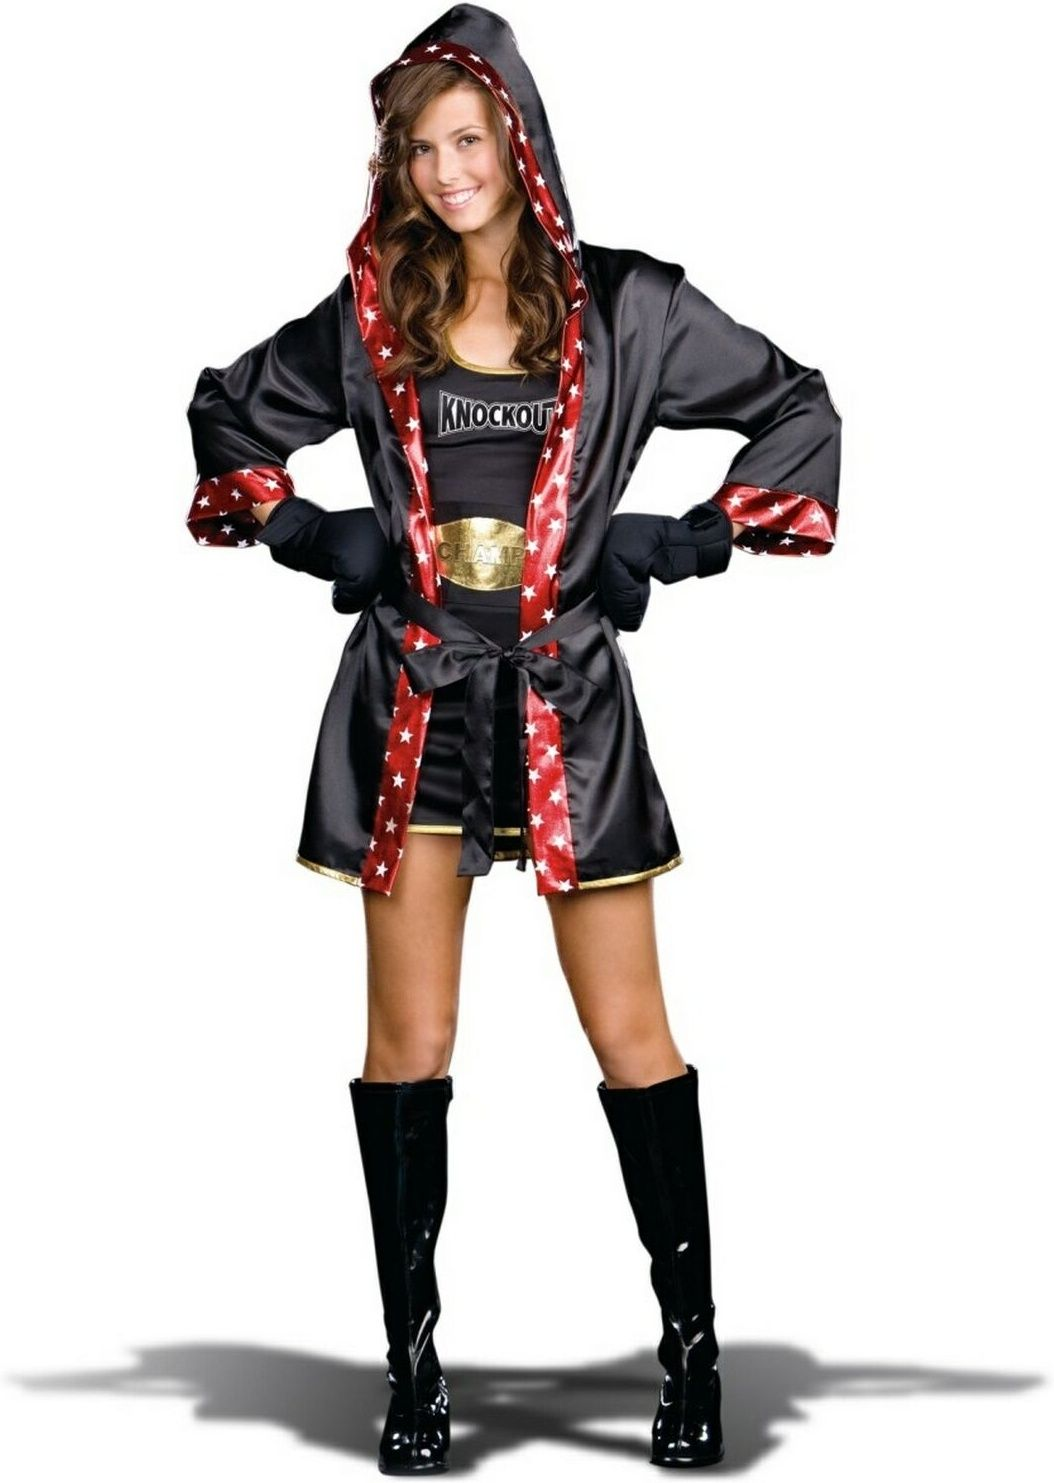 Halloween Costumes For Teen | Cute Halloween Costumes For Teens Tko Costume Teen Costume